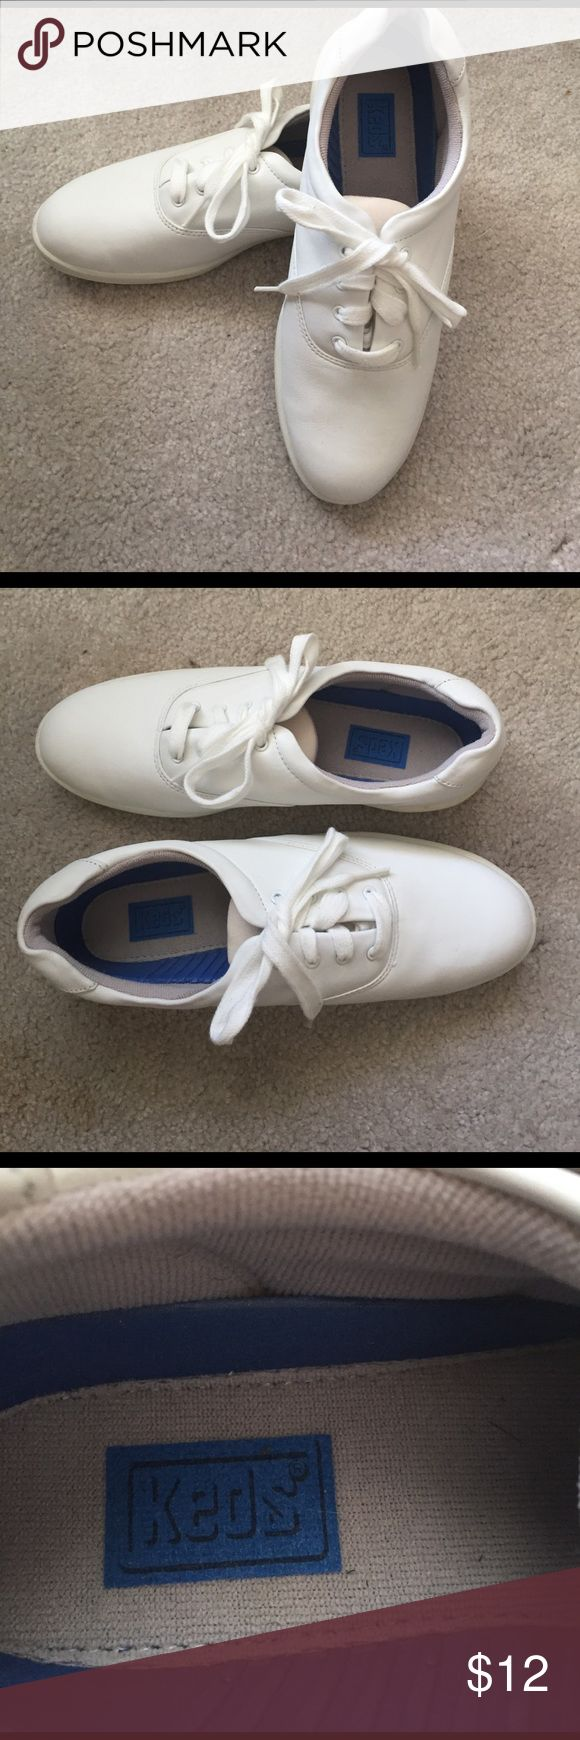 Leather Keds Champion Walkers New Sz 8 1/2 New never worn Keds Women Champion Walker in White. Suze 8 1/2. Keds Shoes Athletic Shoes